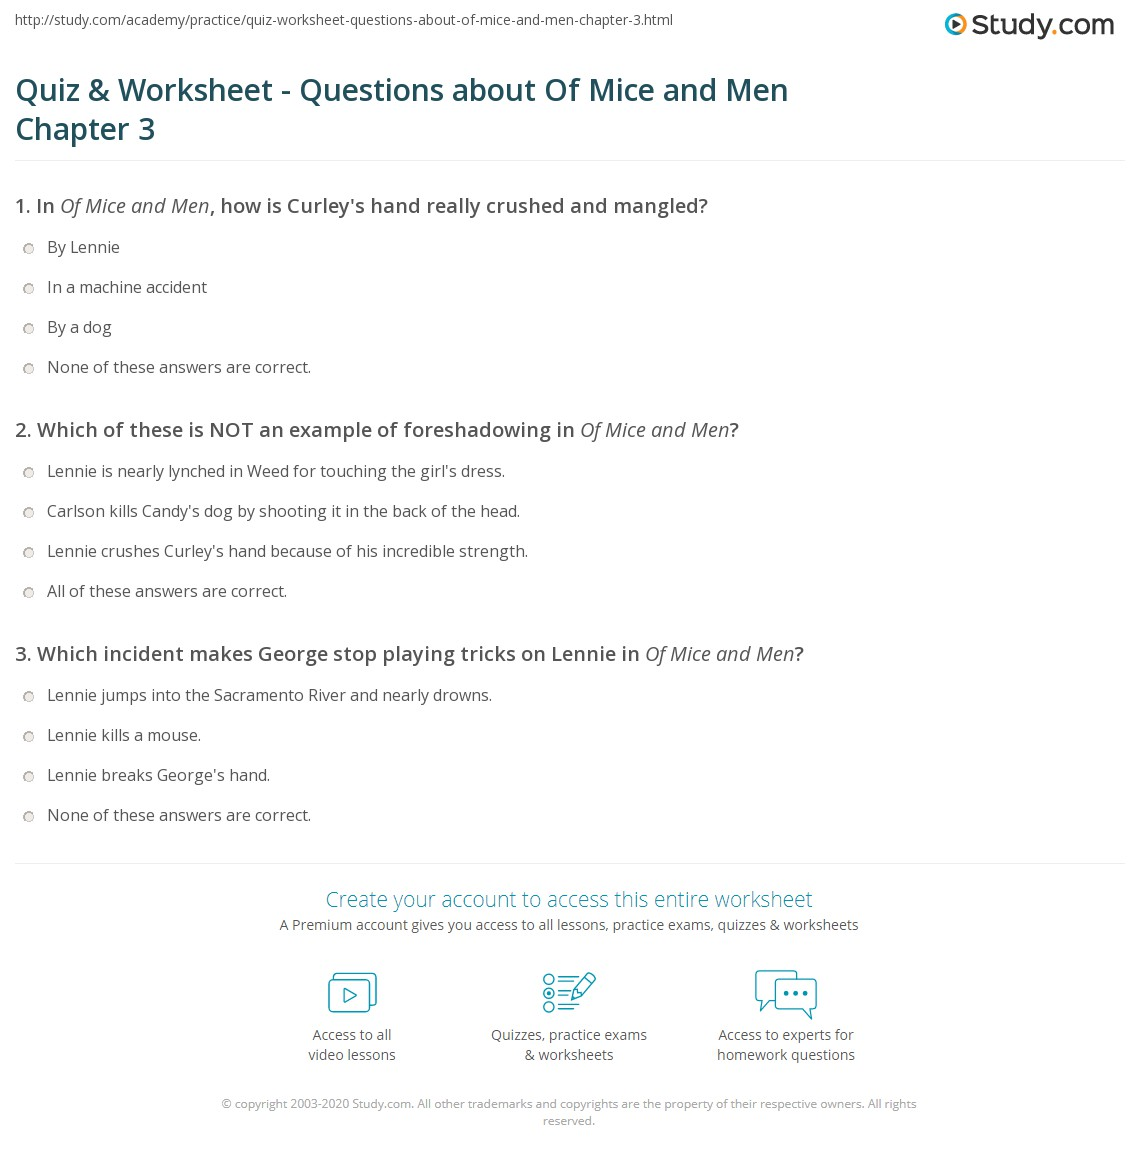 Of Mice And Men Quotes With Page Numbers Quiz & Worksheet  Questions About Of Mice And Men Chapter 3